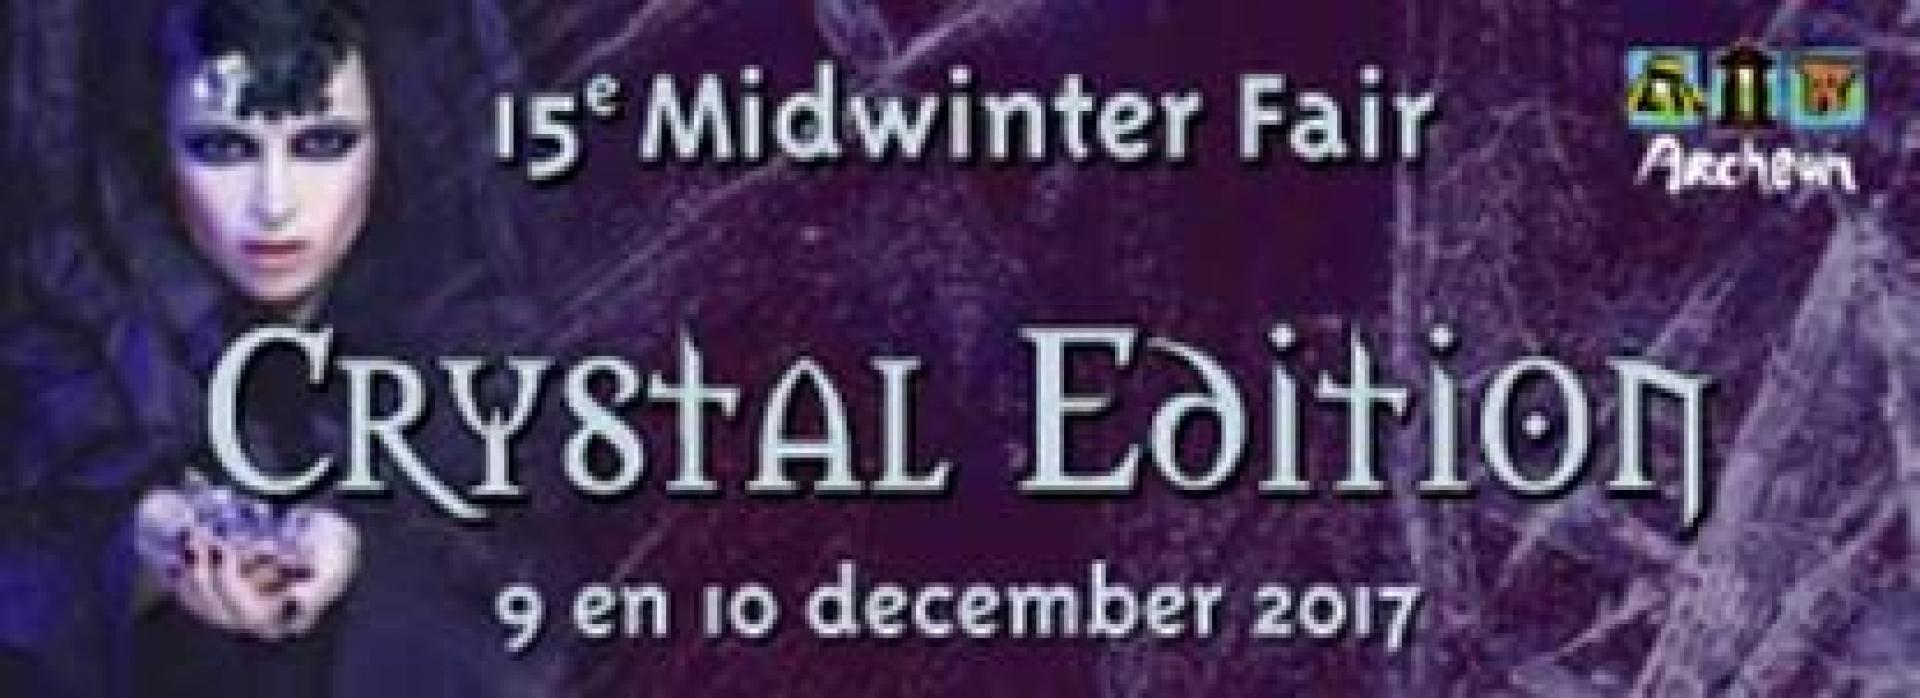 15e Midwinter Fair